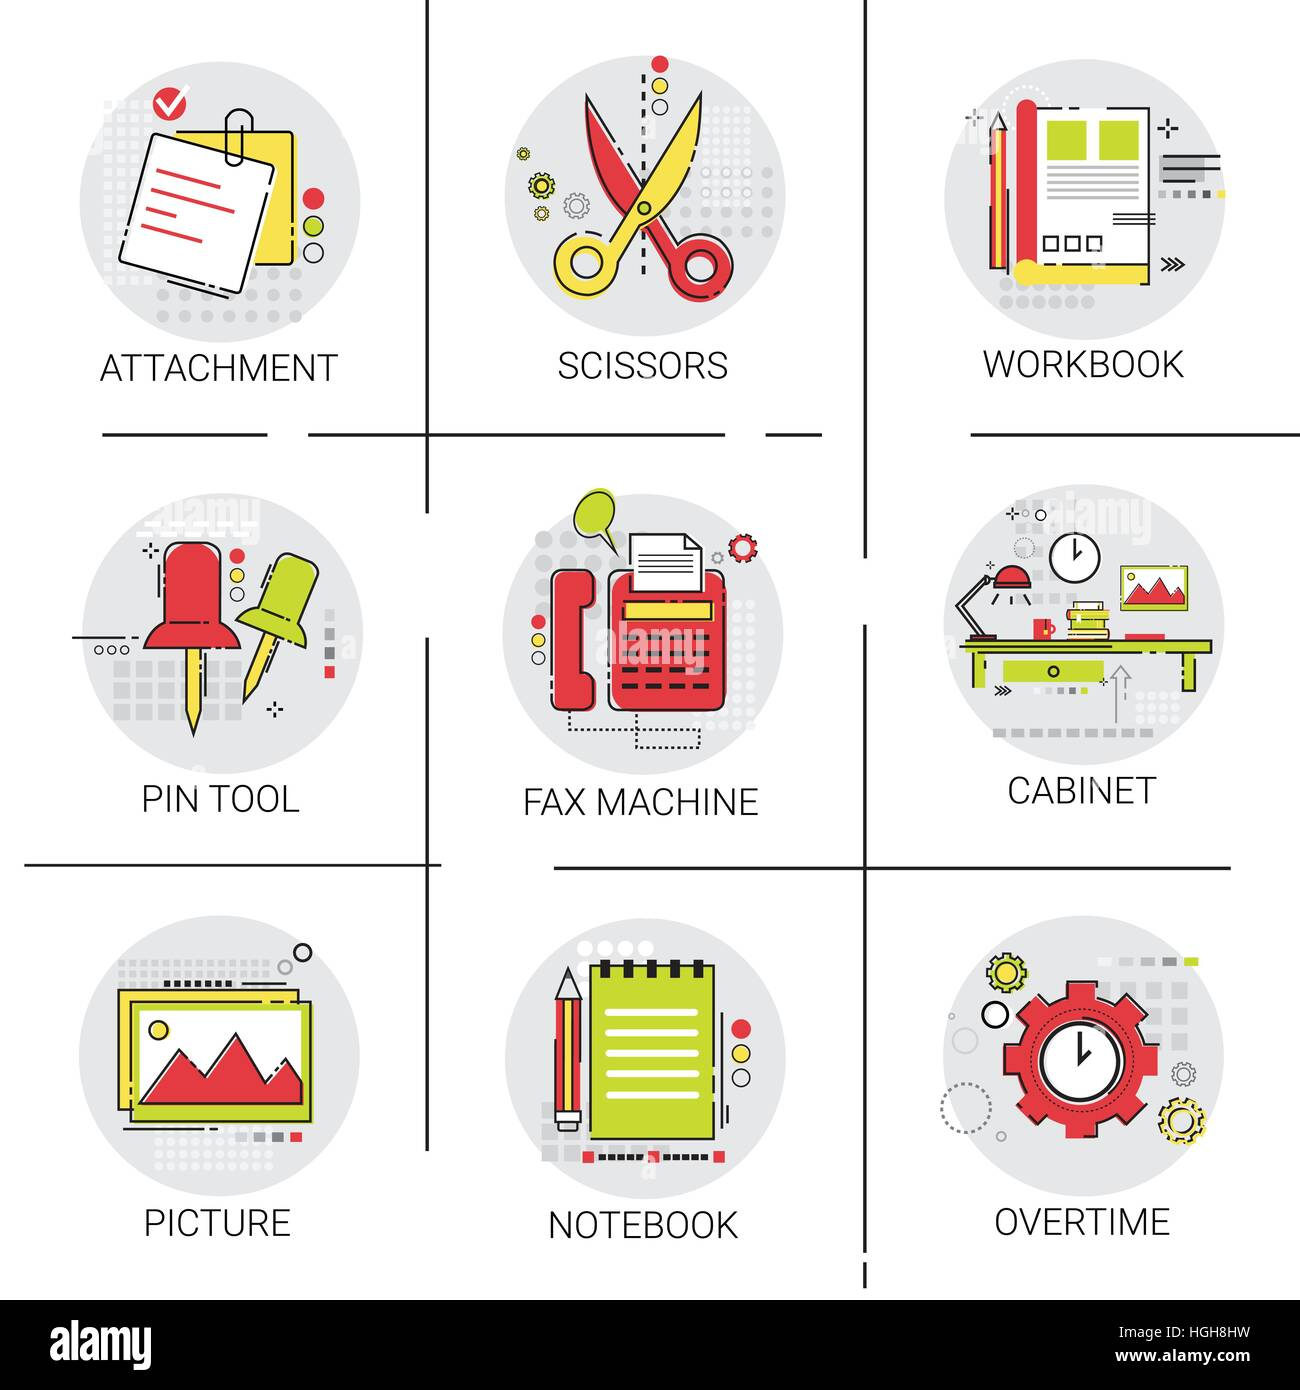 Cabinet Workplace Desk Workspace Office Equipment Icon Set - Stock Vector